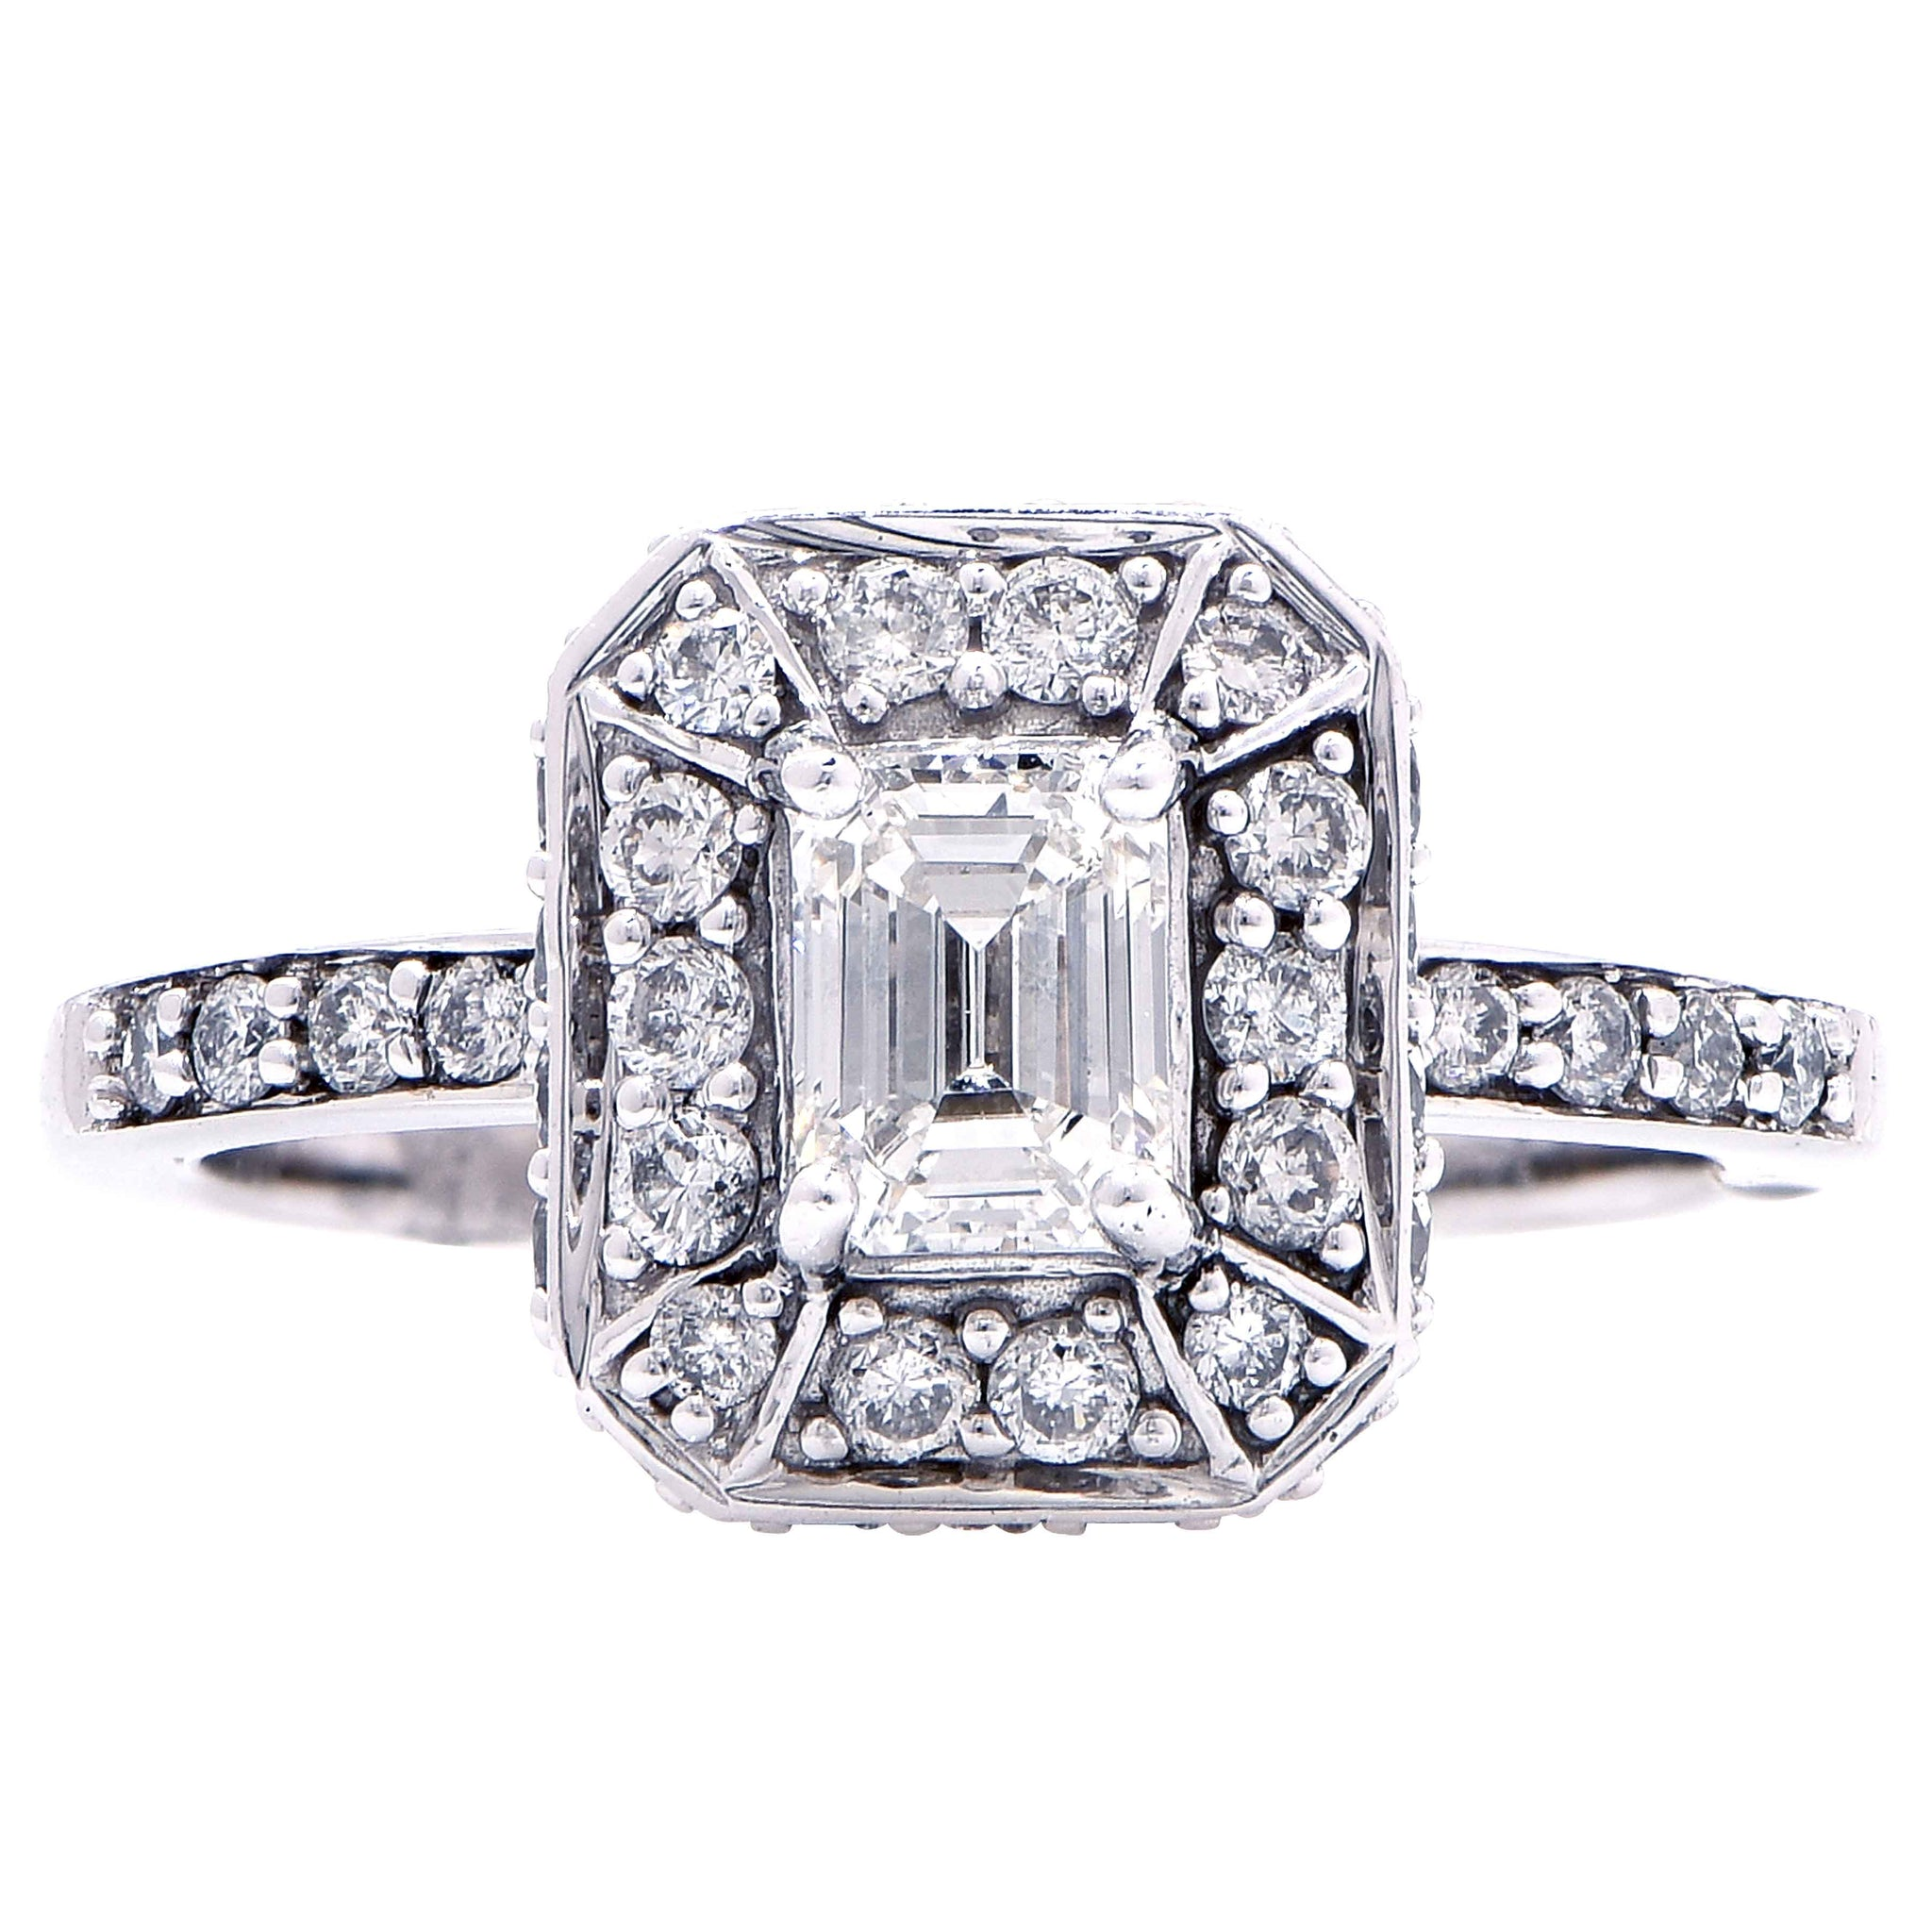 rings fits ring jewellery diamond tacori products sz engagement platinum carat emerald size cut